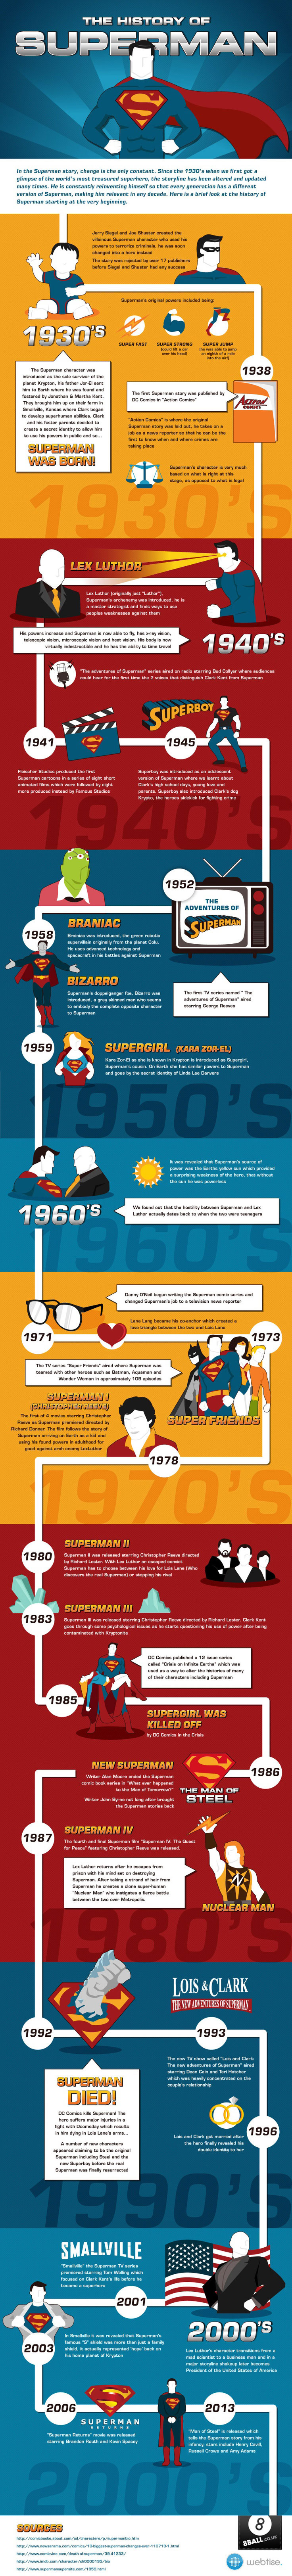 history-of-superman-infography